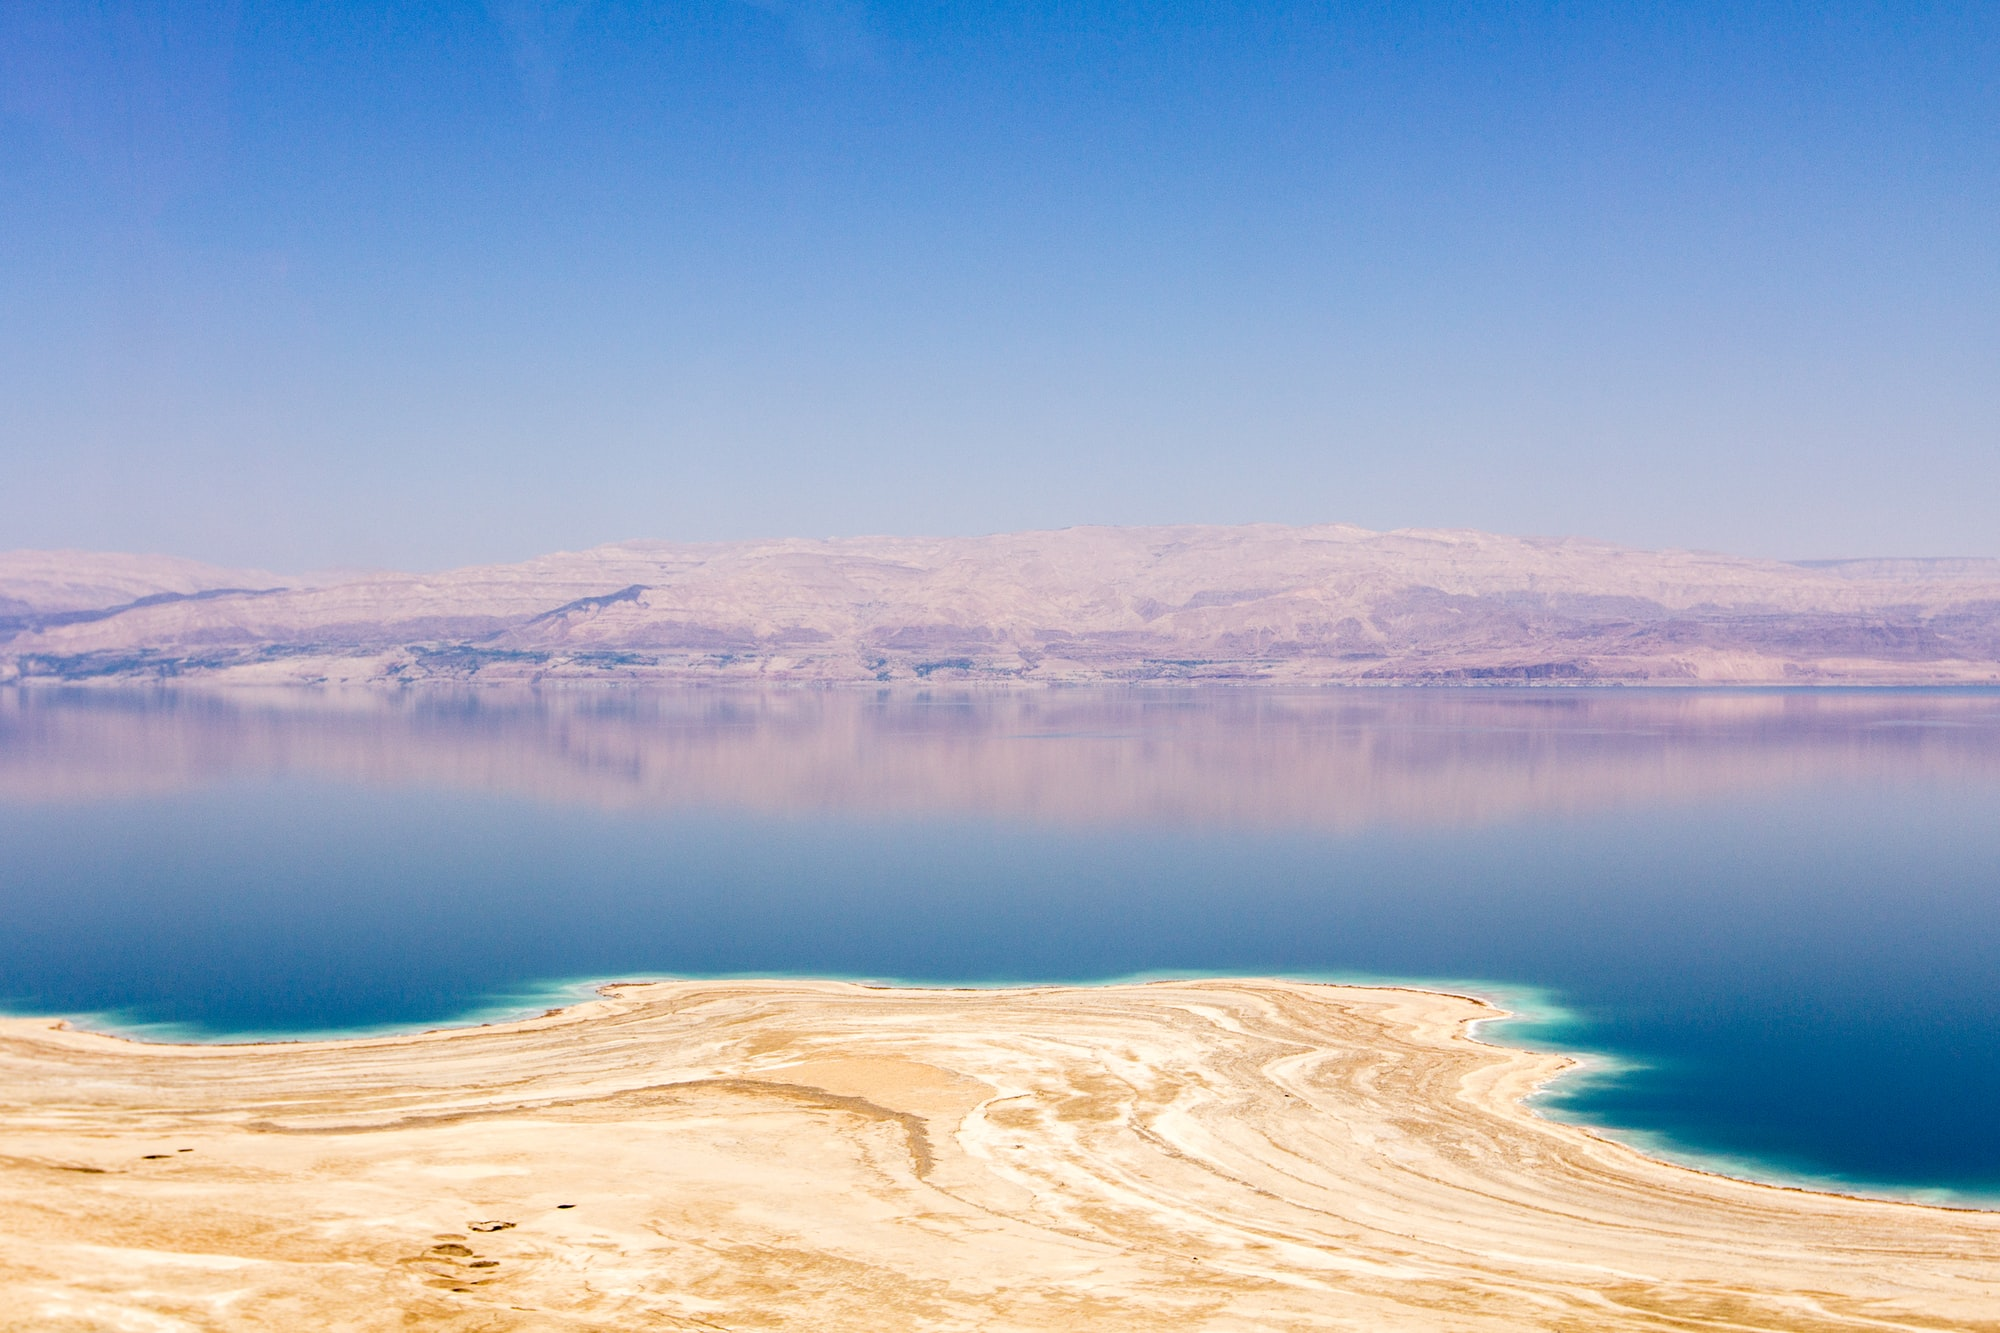 It's beautiful, this is my first trip to Israel, and Dead-sea is such amazing place.  unfortunately it's decreasing, I wish we can protect this amazing place.